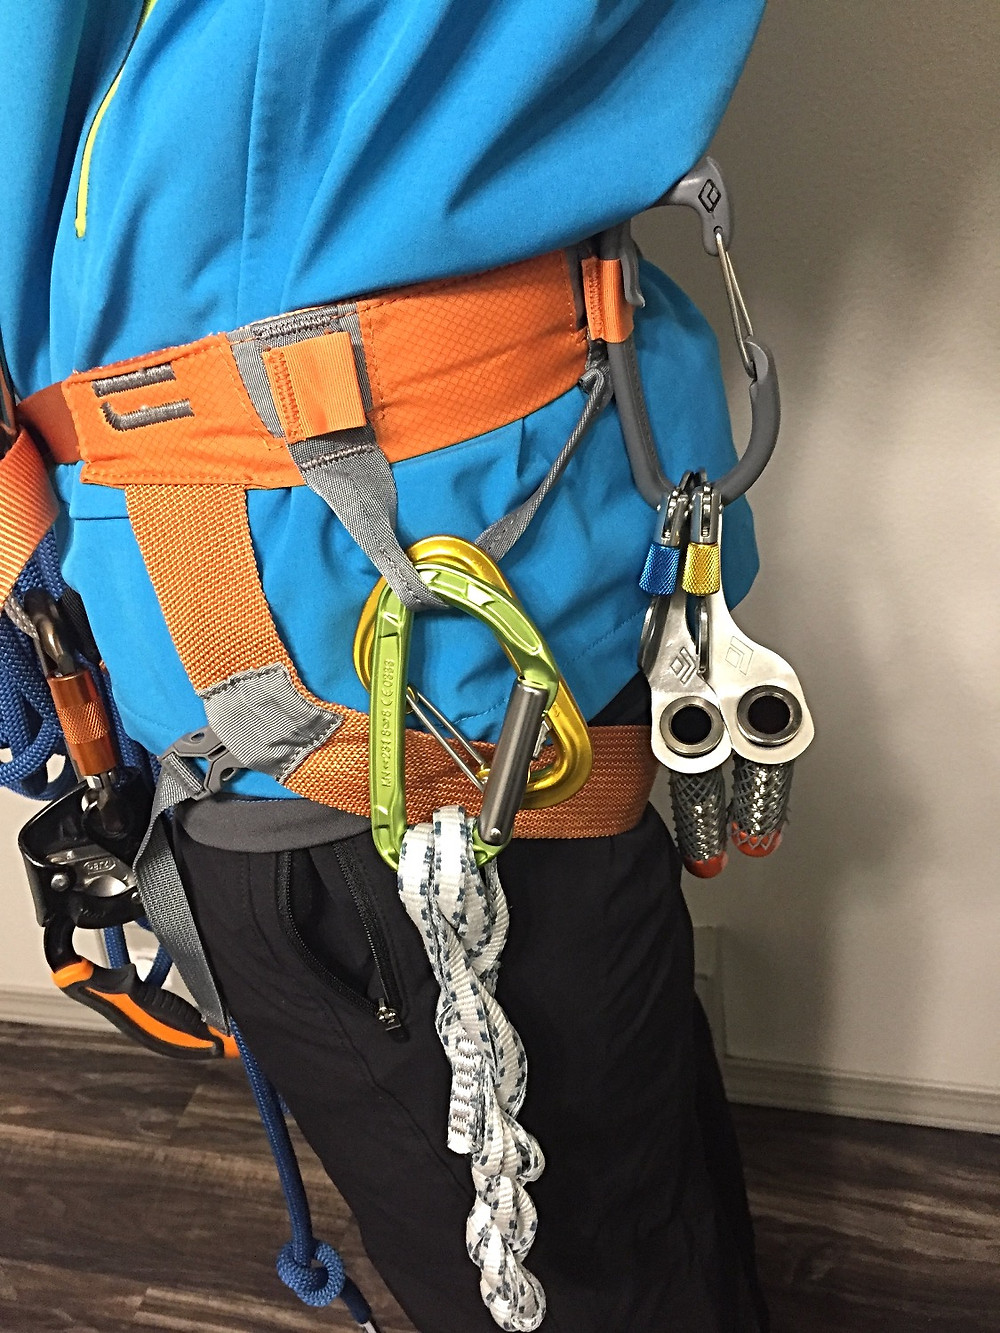 ice screws and carabiners